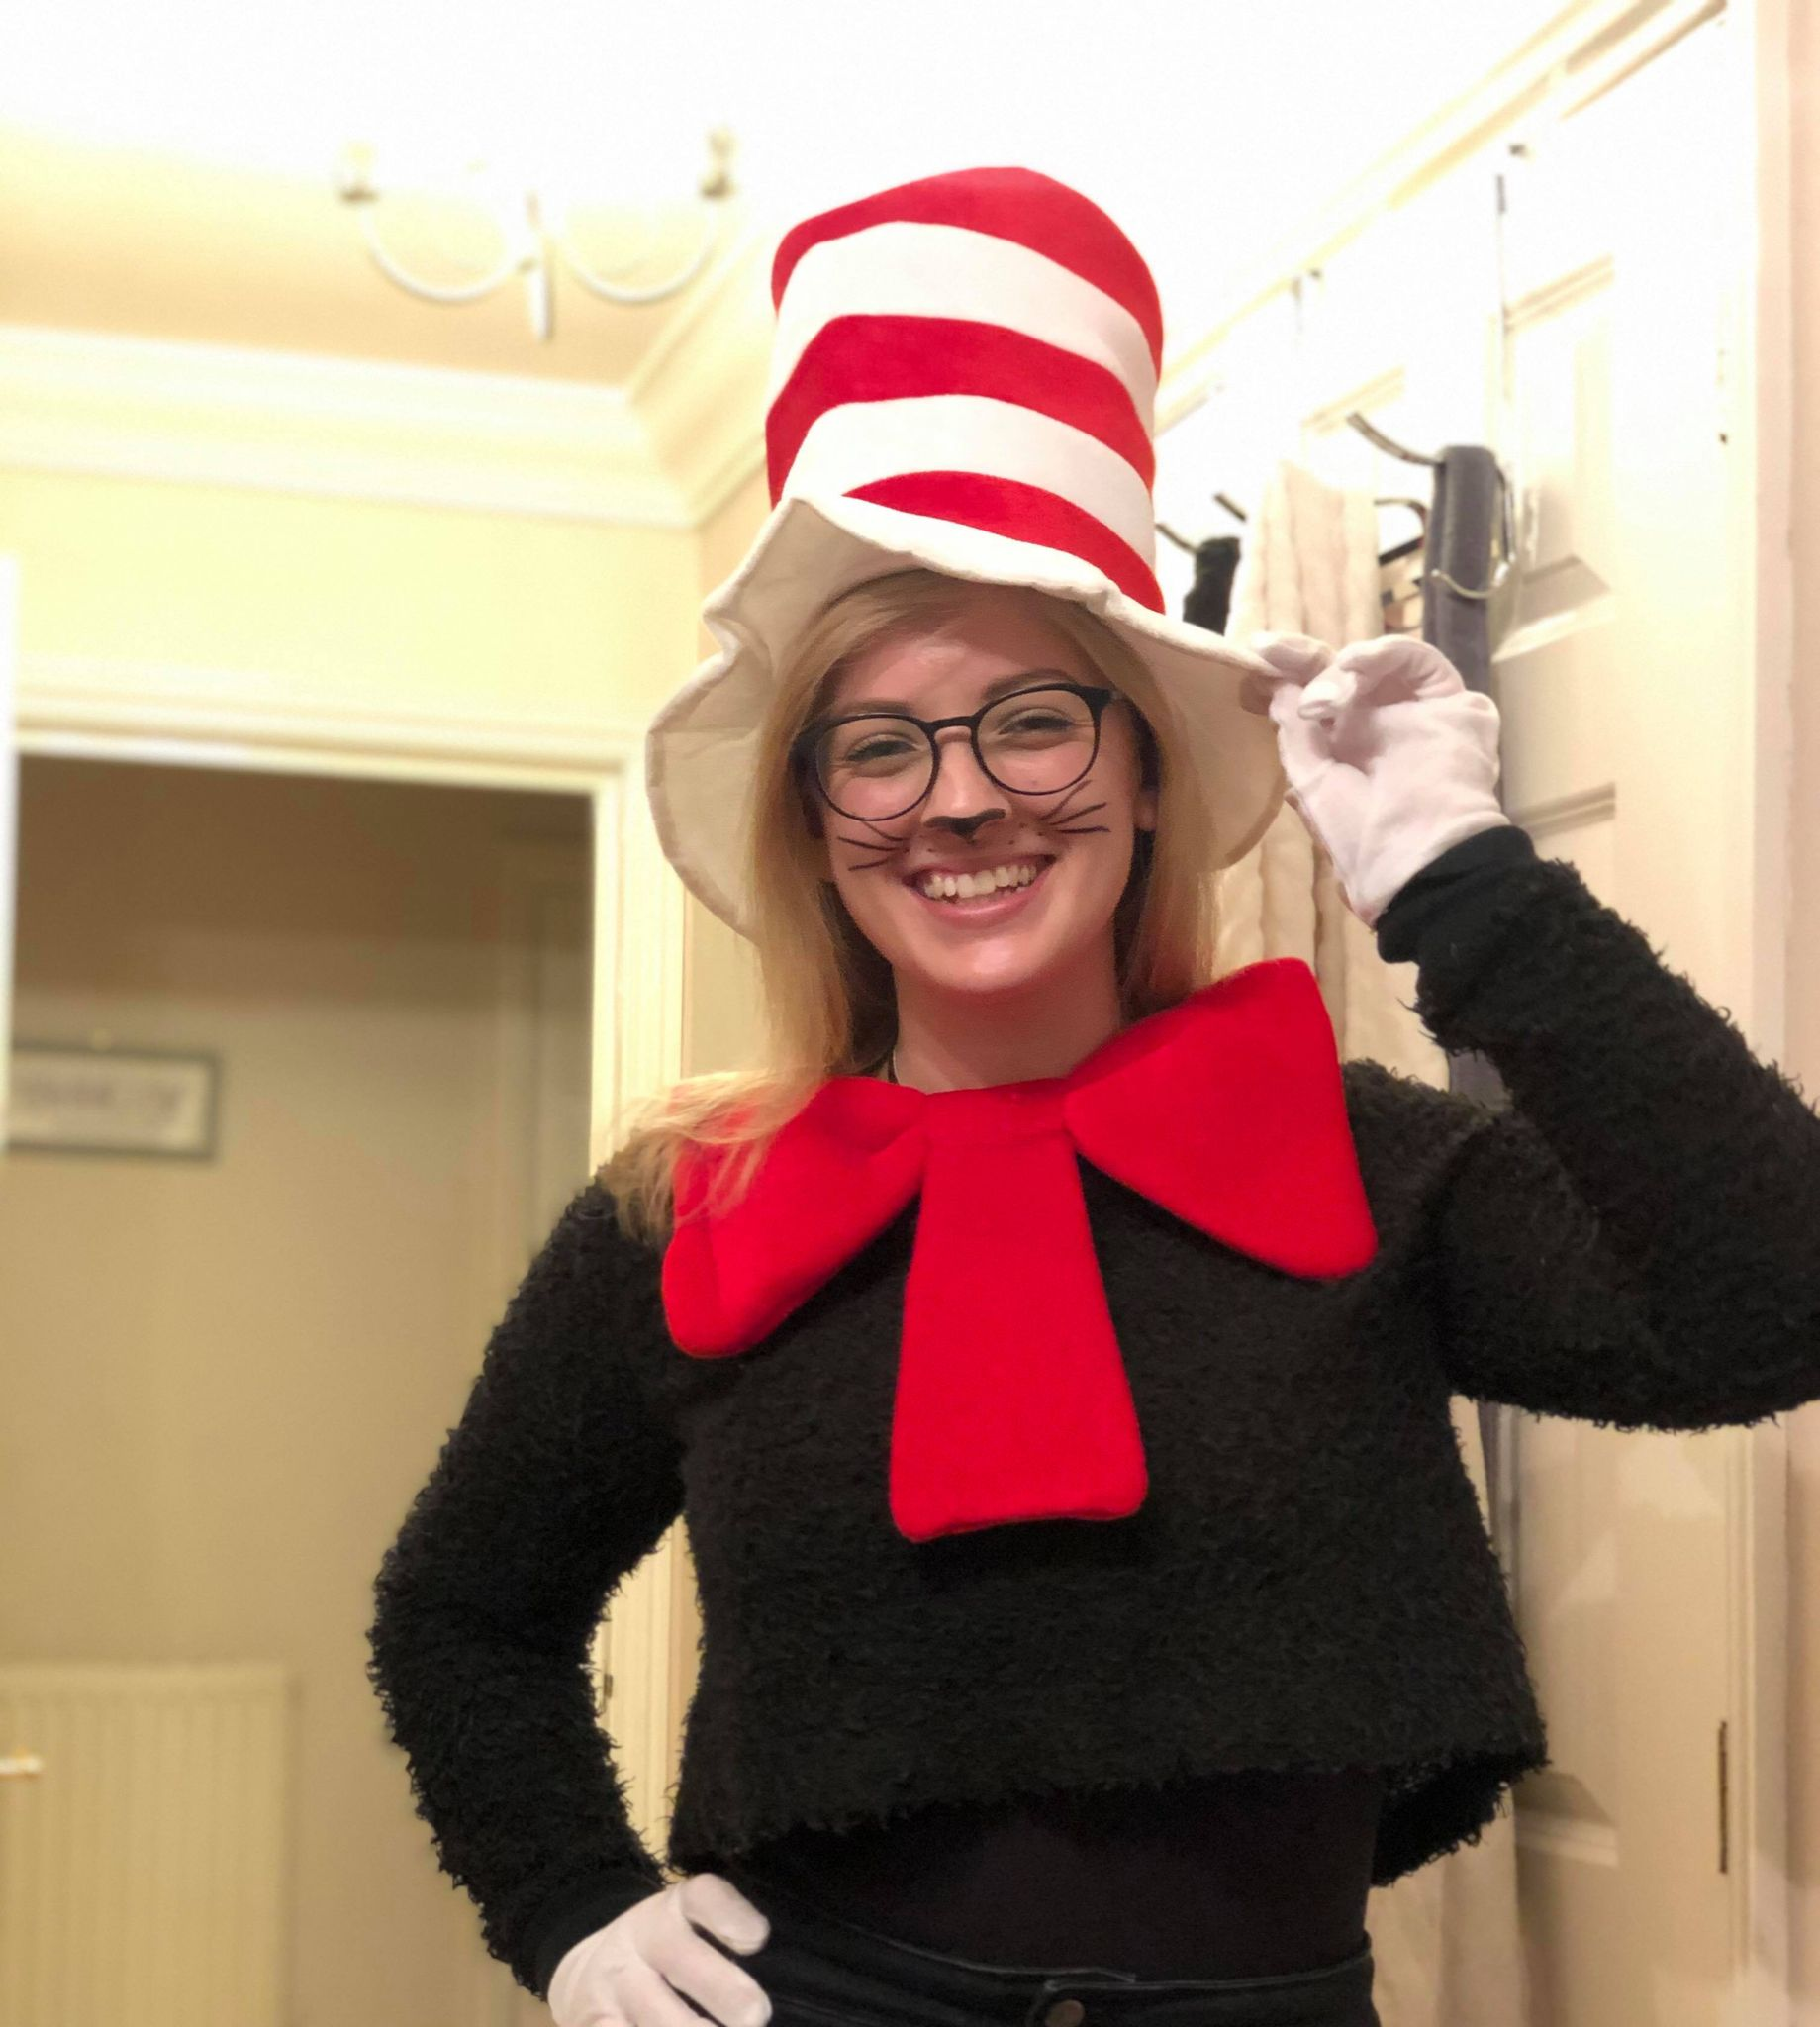 A Teaching Assistant dressed up as The Cat in the Hat, a character created by Dr. Seuss.